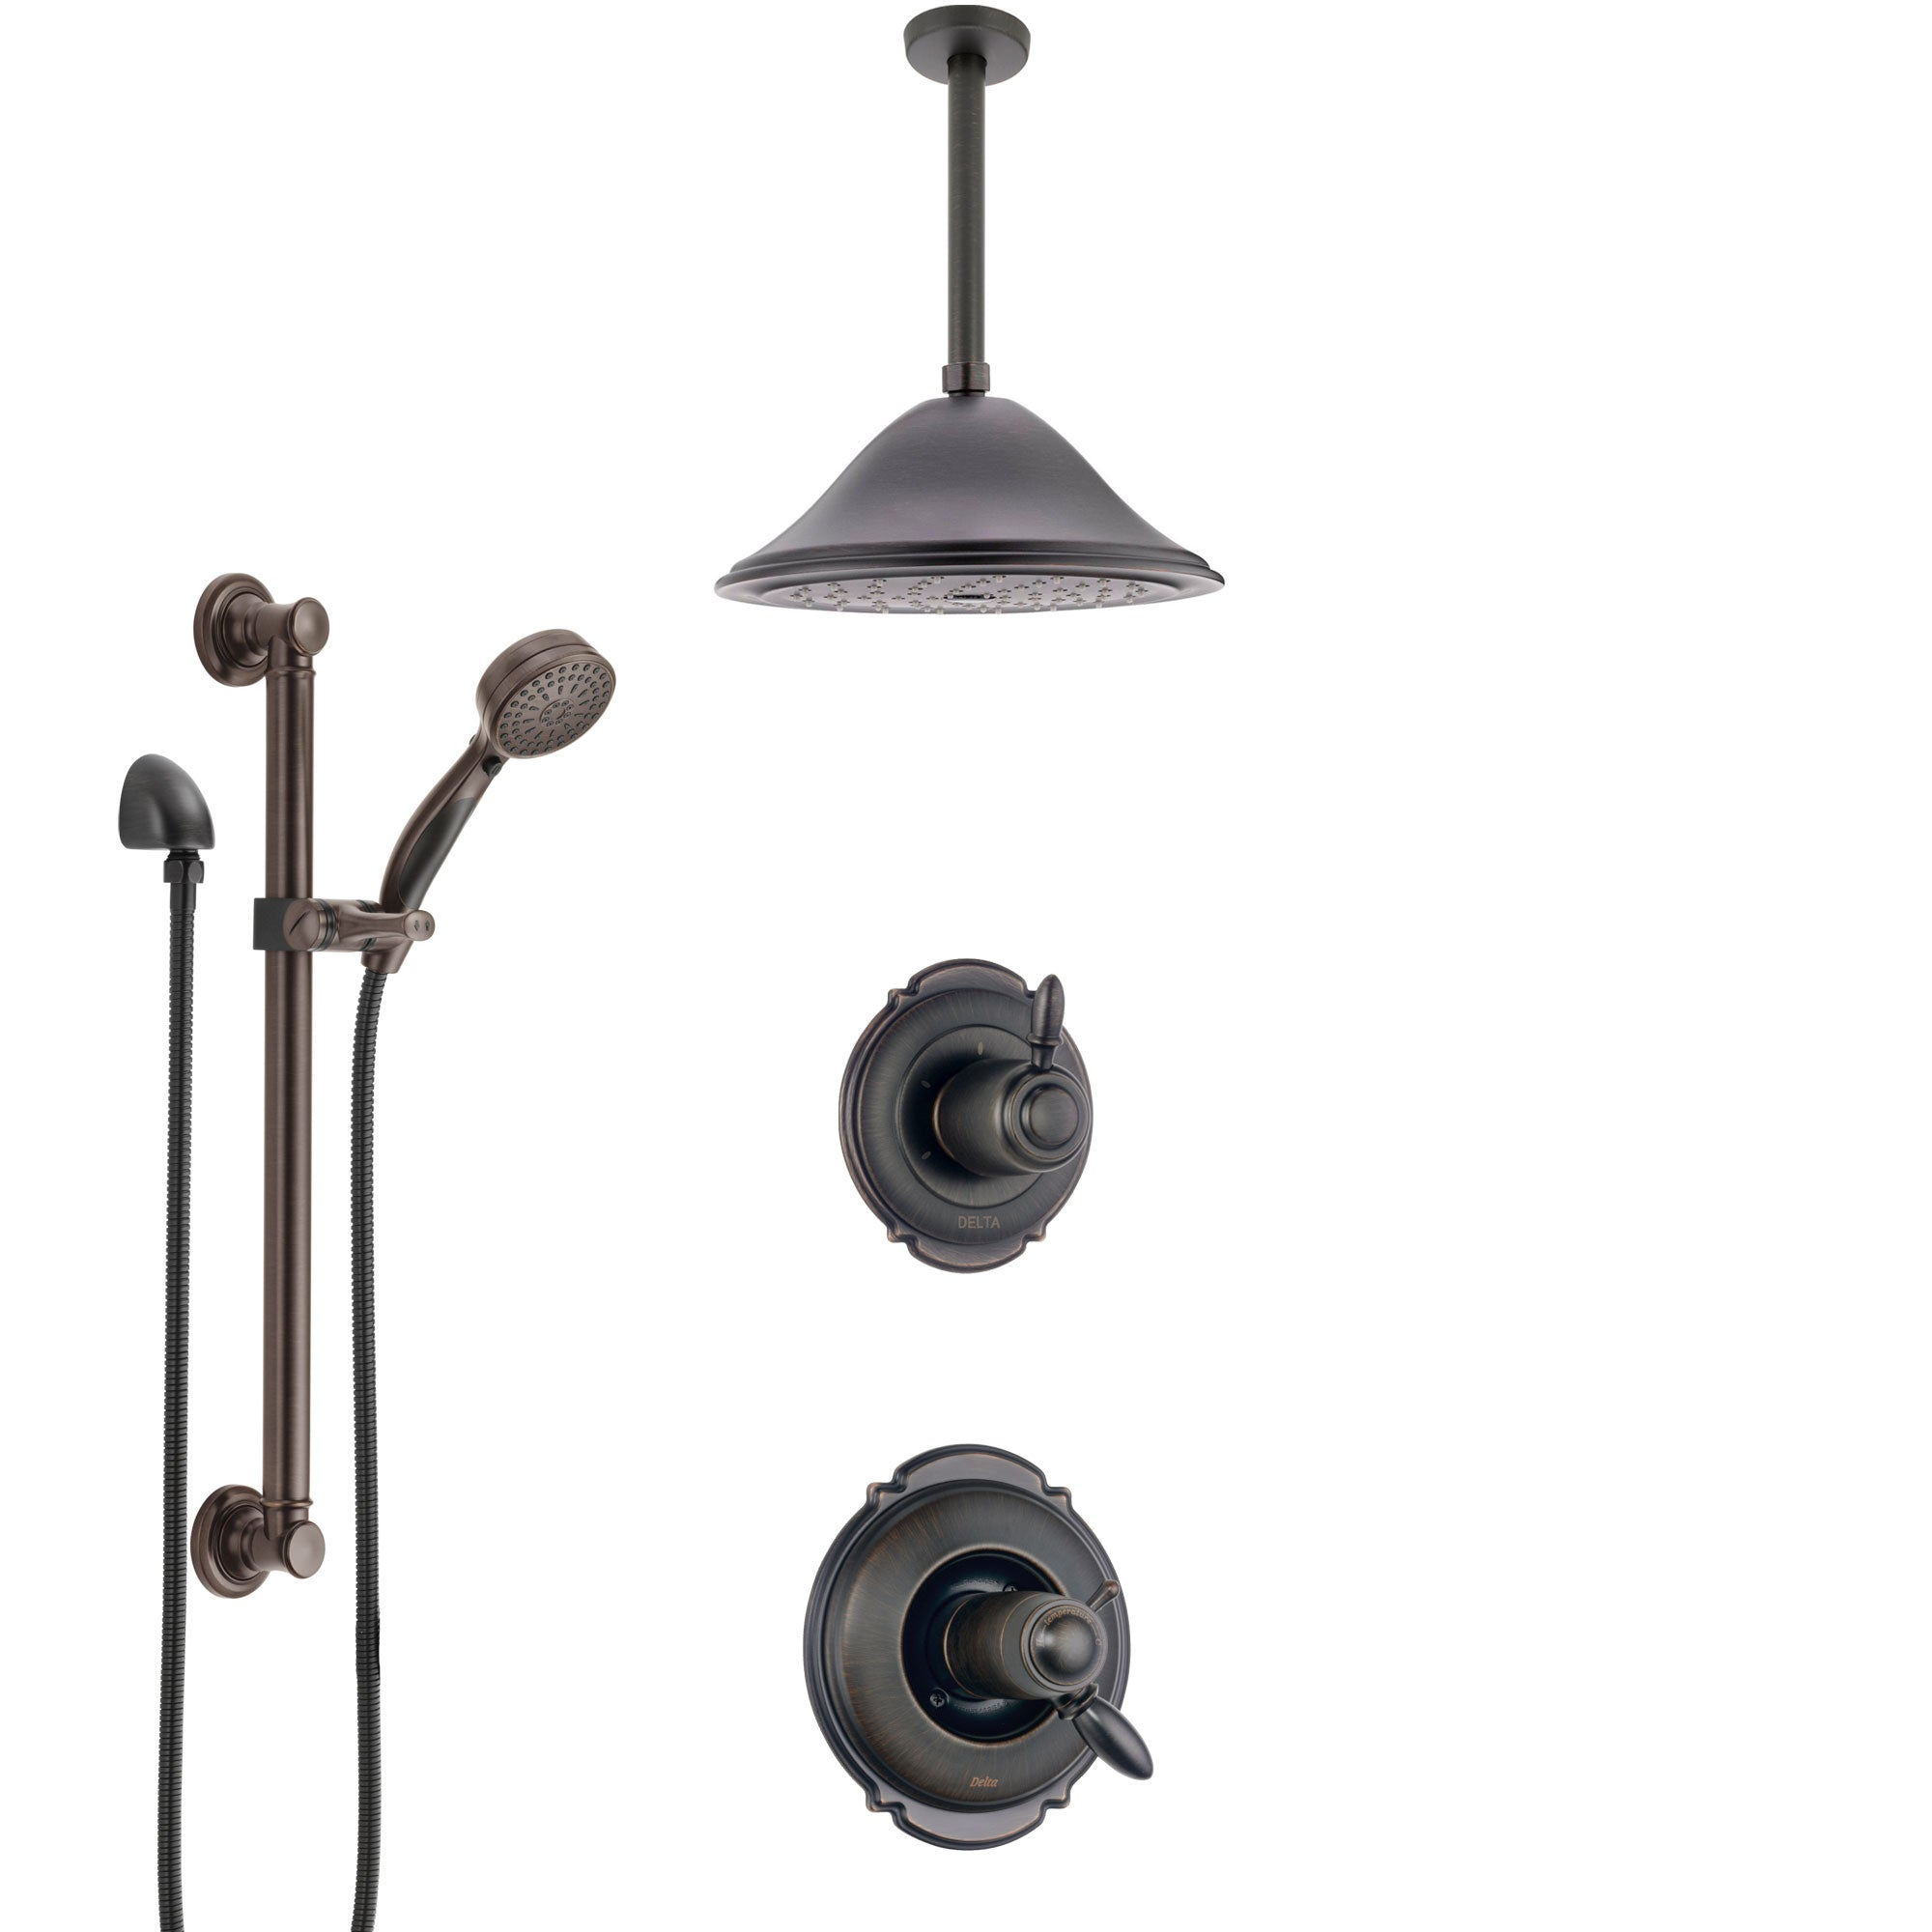 Delta Victorian Venetian Bronze Shower System with Dual Thermostatic Control, Diverter, Ceiling Mount Showerhead, and Grab Bar Hand Shower SS17T551RB3